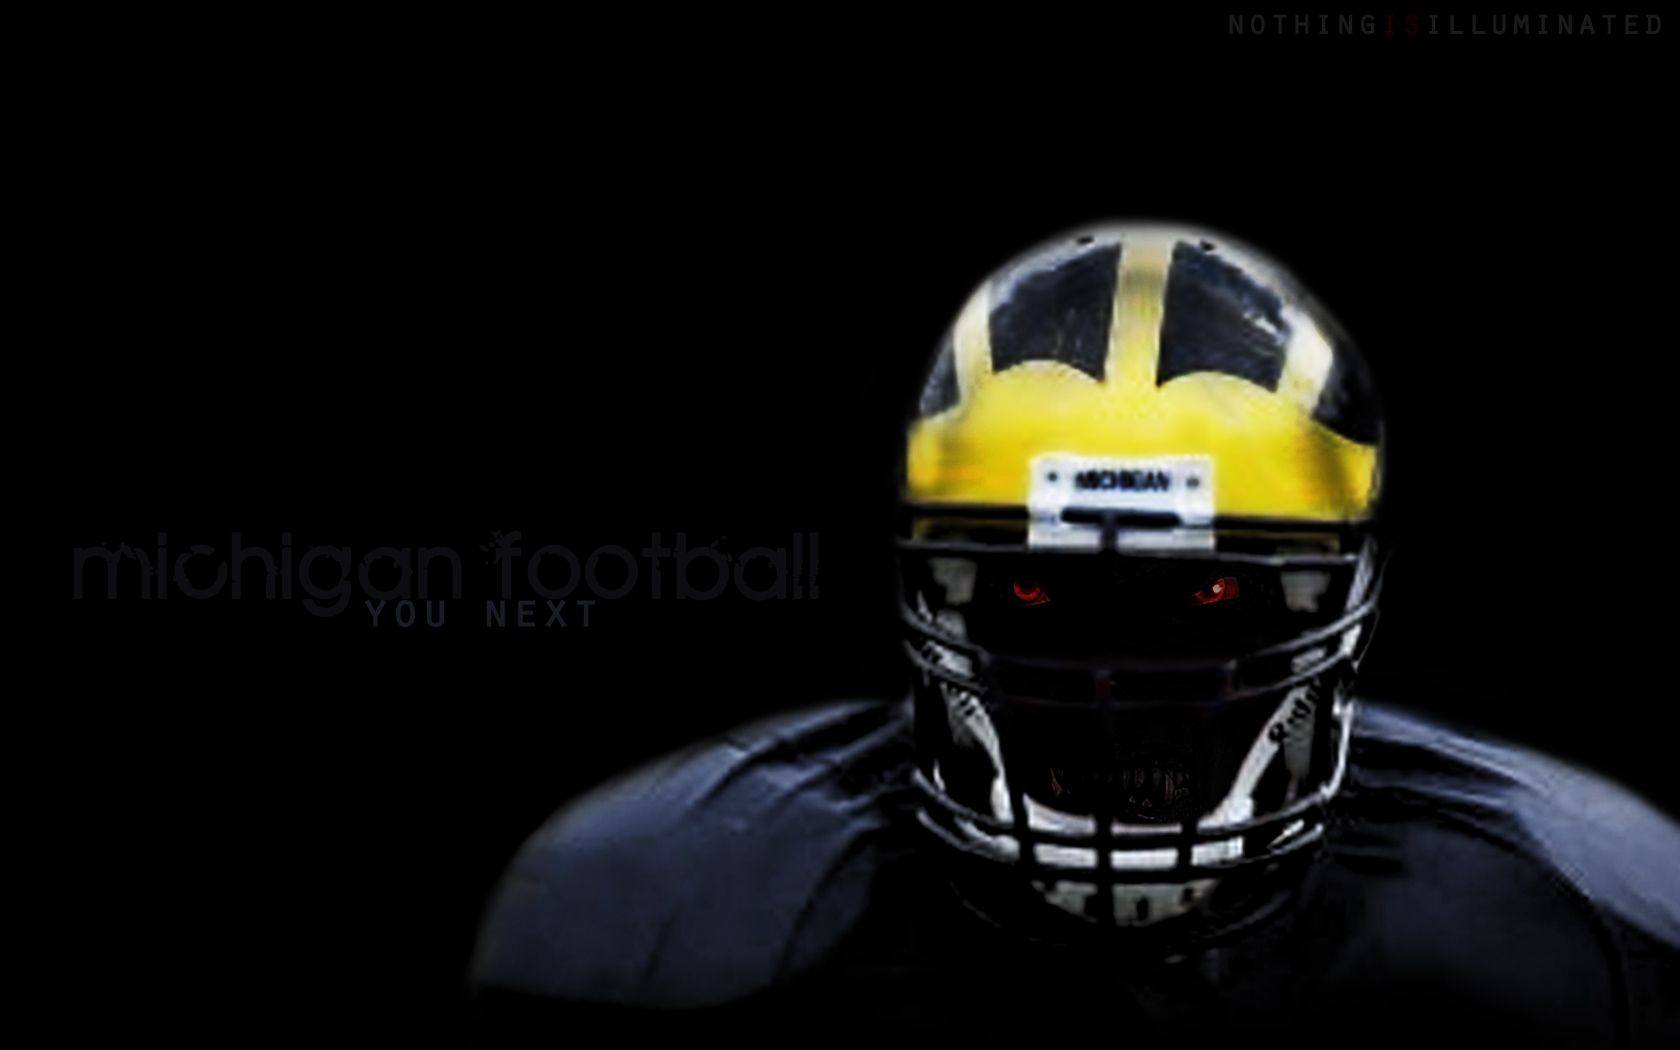 Michigan Wolverines Football Wallpapers Group 1680 1050 Michigan Wolverines Football Wallpap Michigan Wolverines Football Wolverines Football Michigan Football